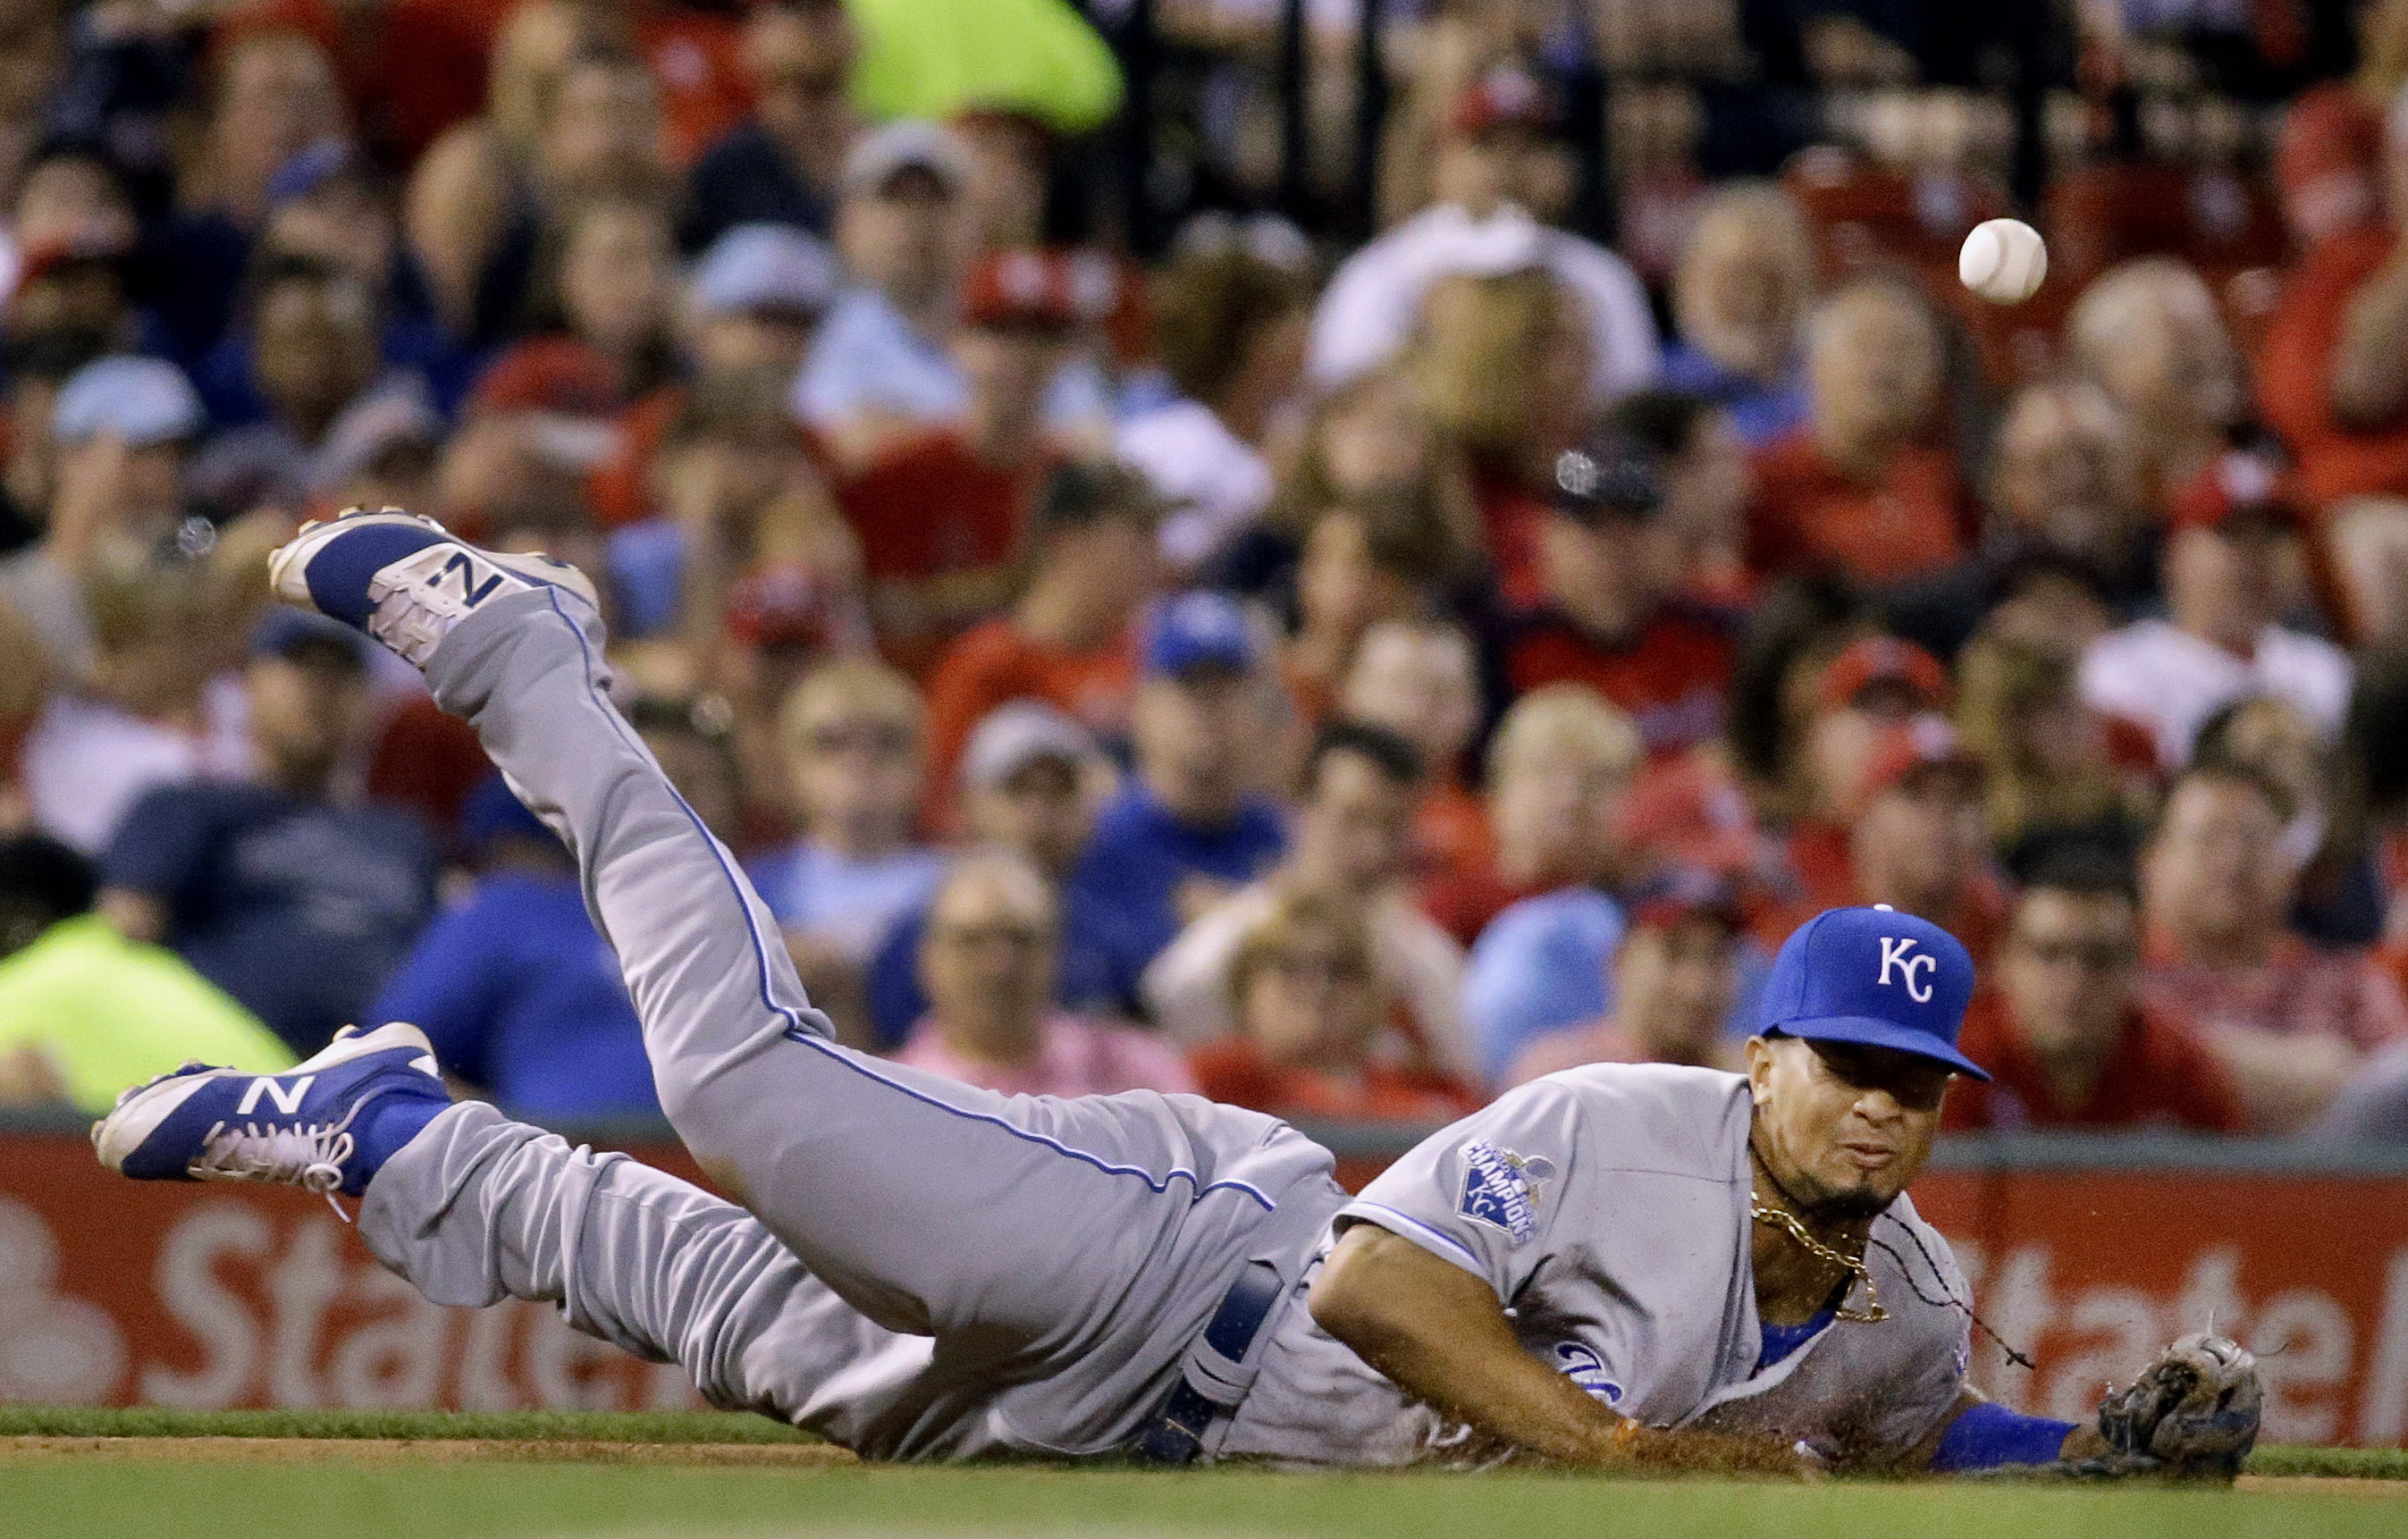 Kansas City Royals third baseman Cheslor Cuthbert dives but is unable to catch a single hit by St. Louis Cardinals' Jhonny Peralta during the fifth inning of a baseball game Wednesday, June 29, 2016, in St. Louis. (AP Photo/Jeff Roberson)